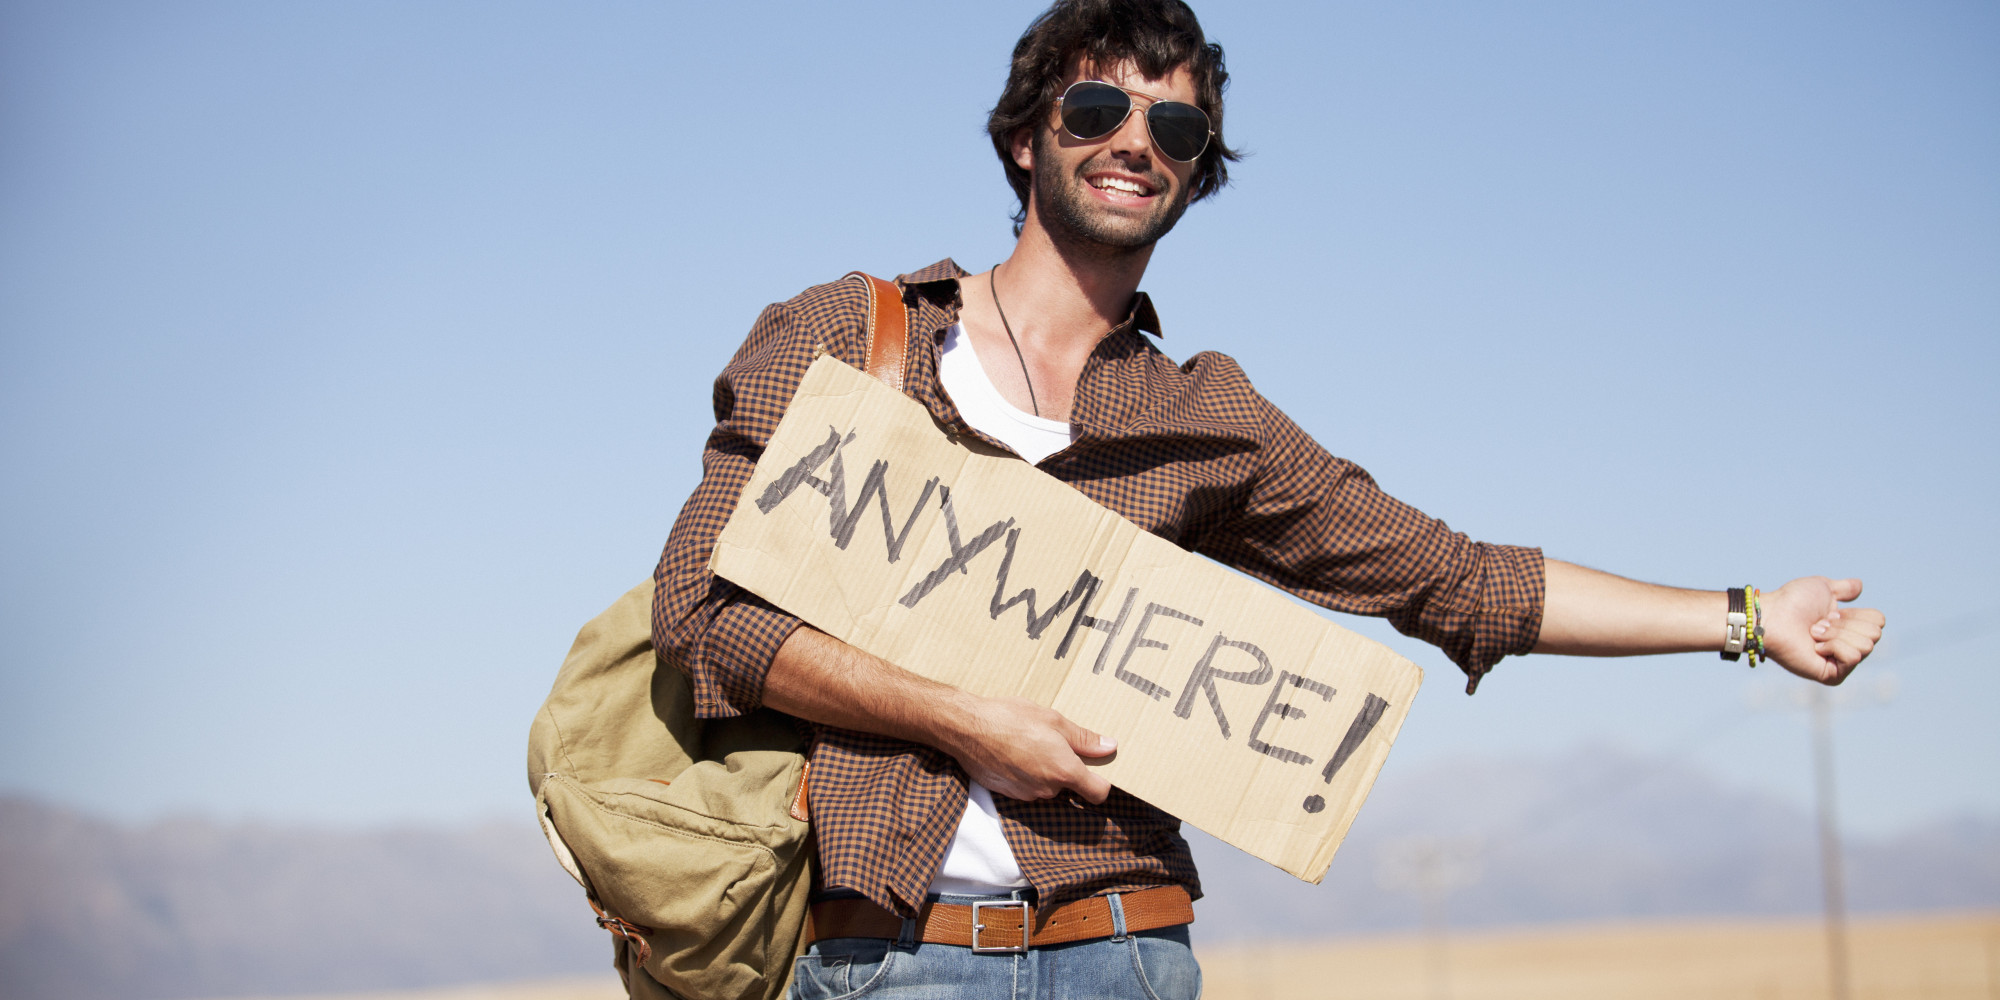 Six thing you should prepare before undergoing a backpacker activity